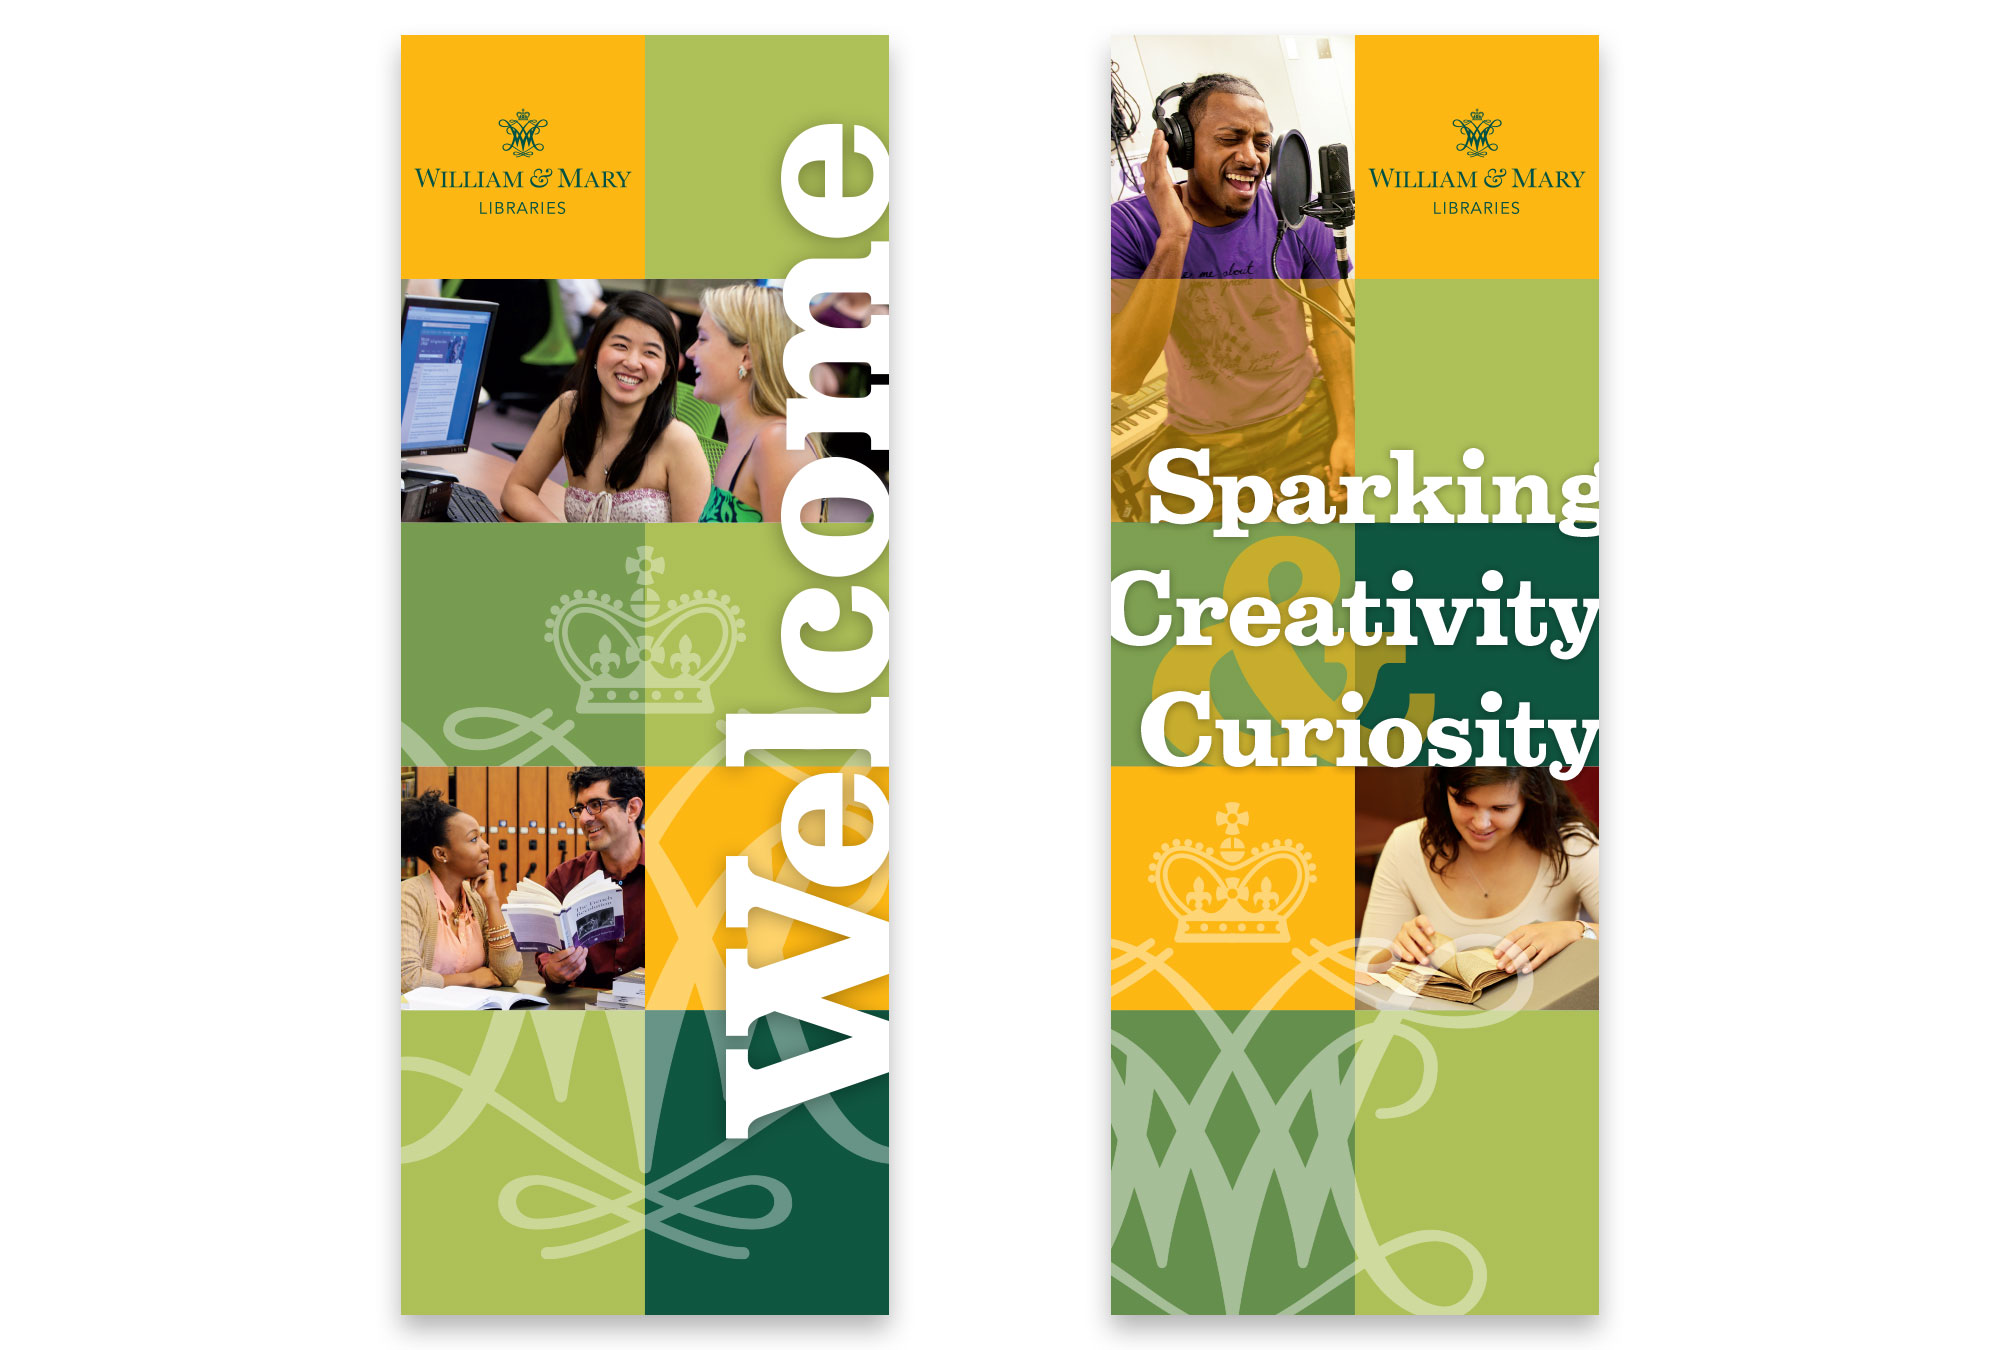 Swem Library welcome banners